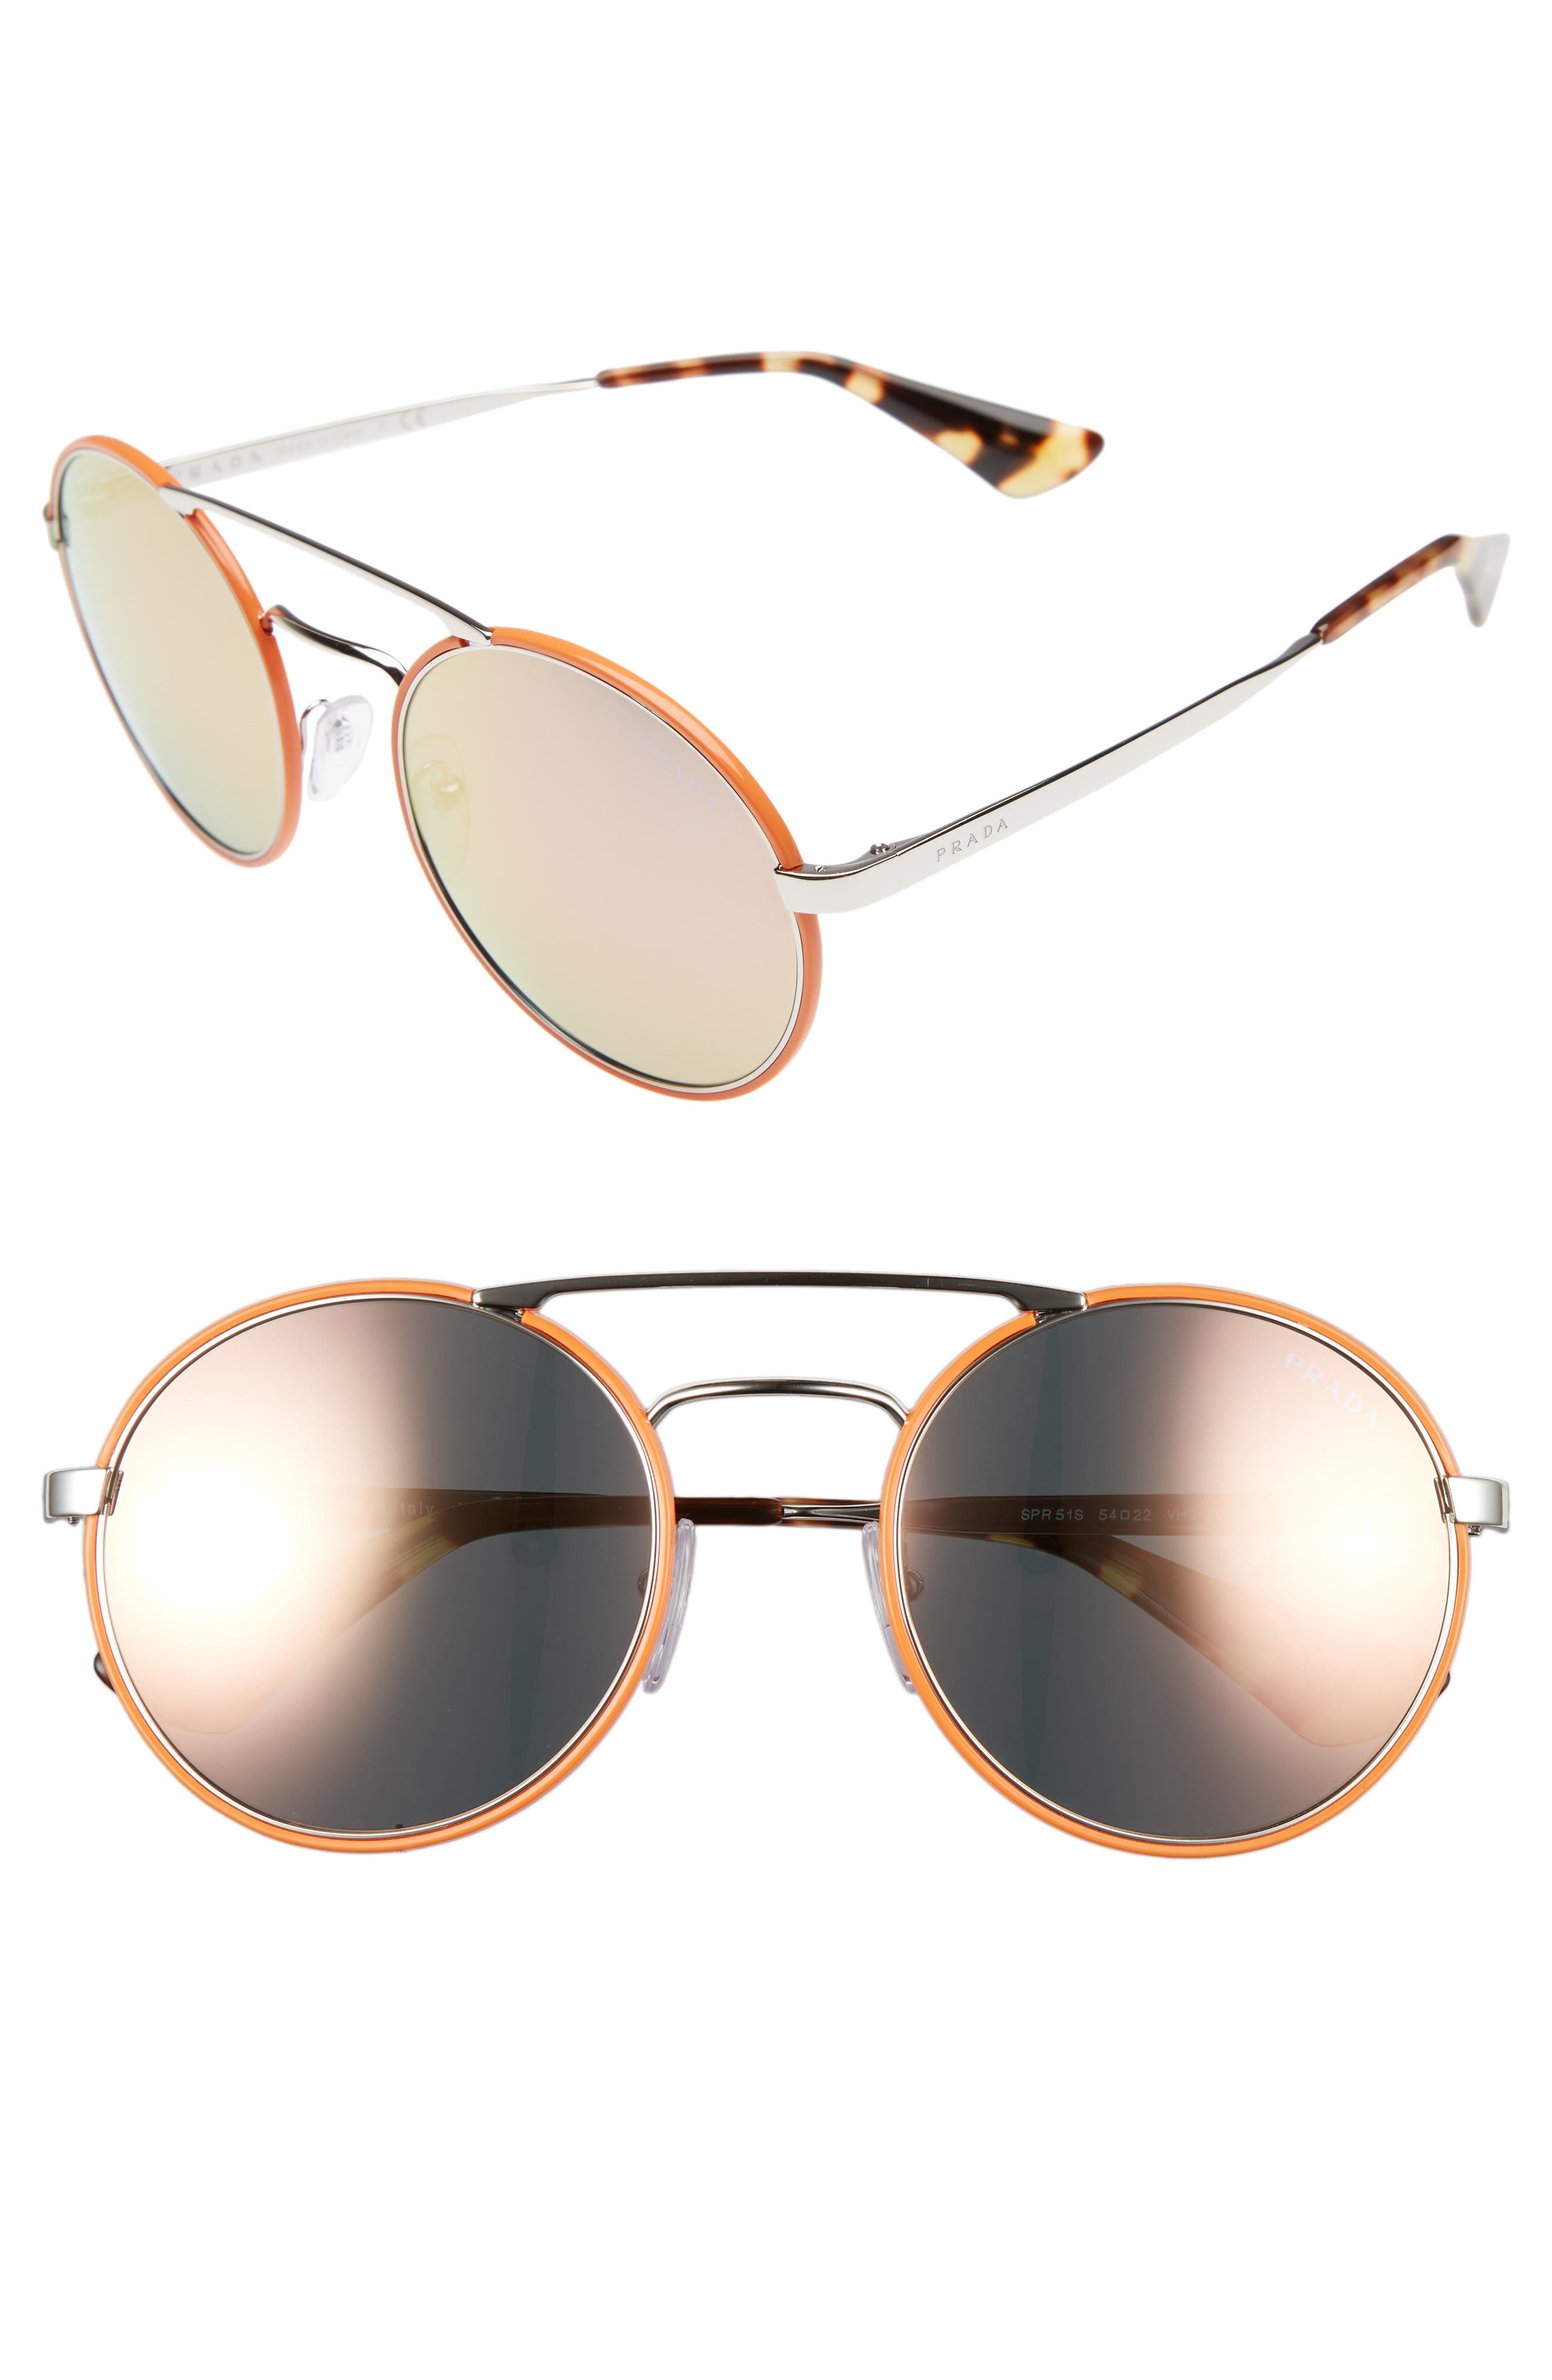 54mm Round Sunglasses,                             Main thumbnail 4, color,